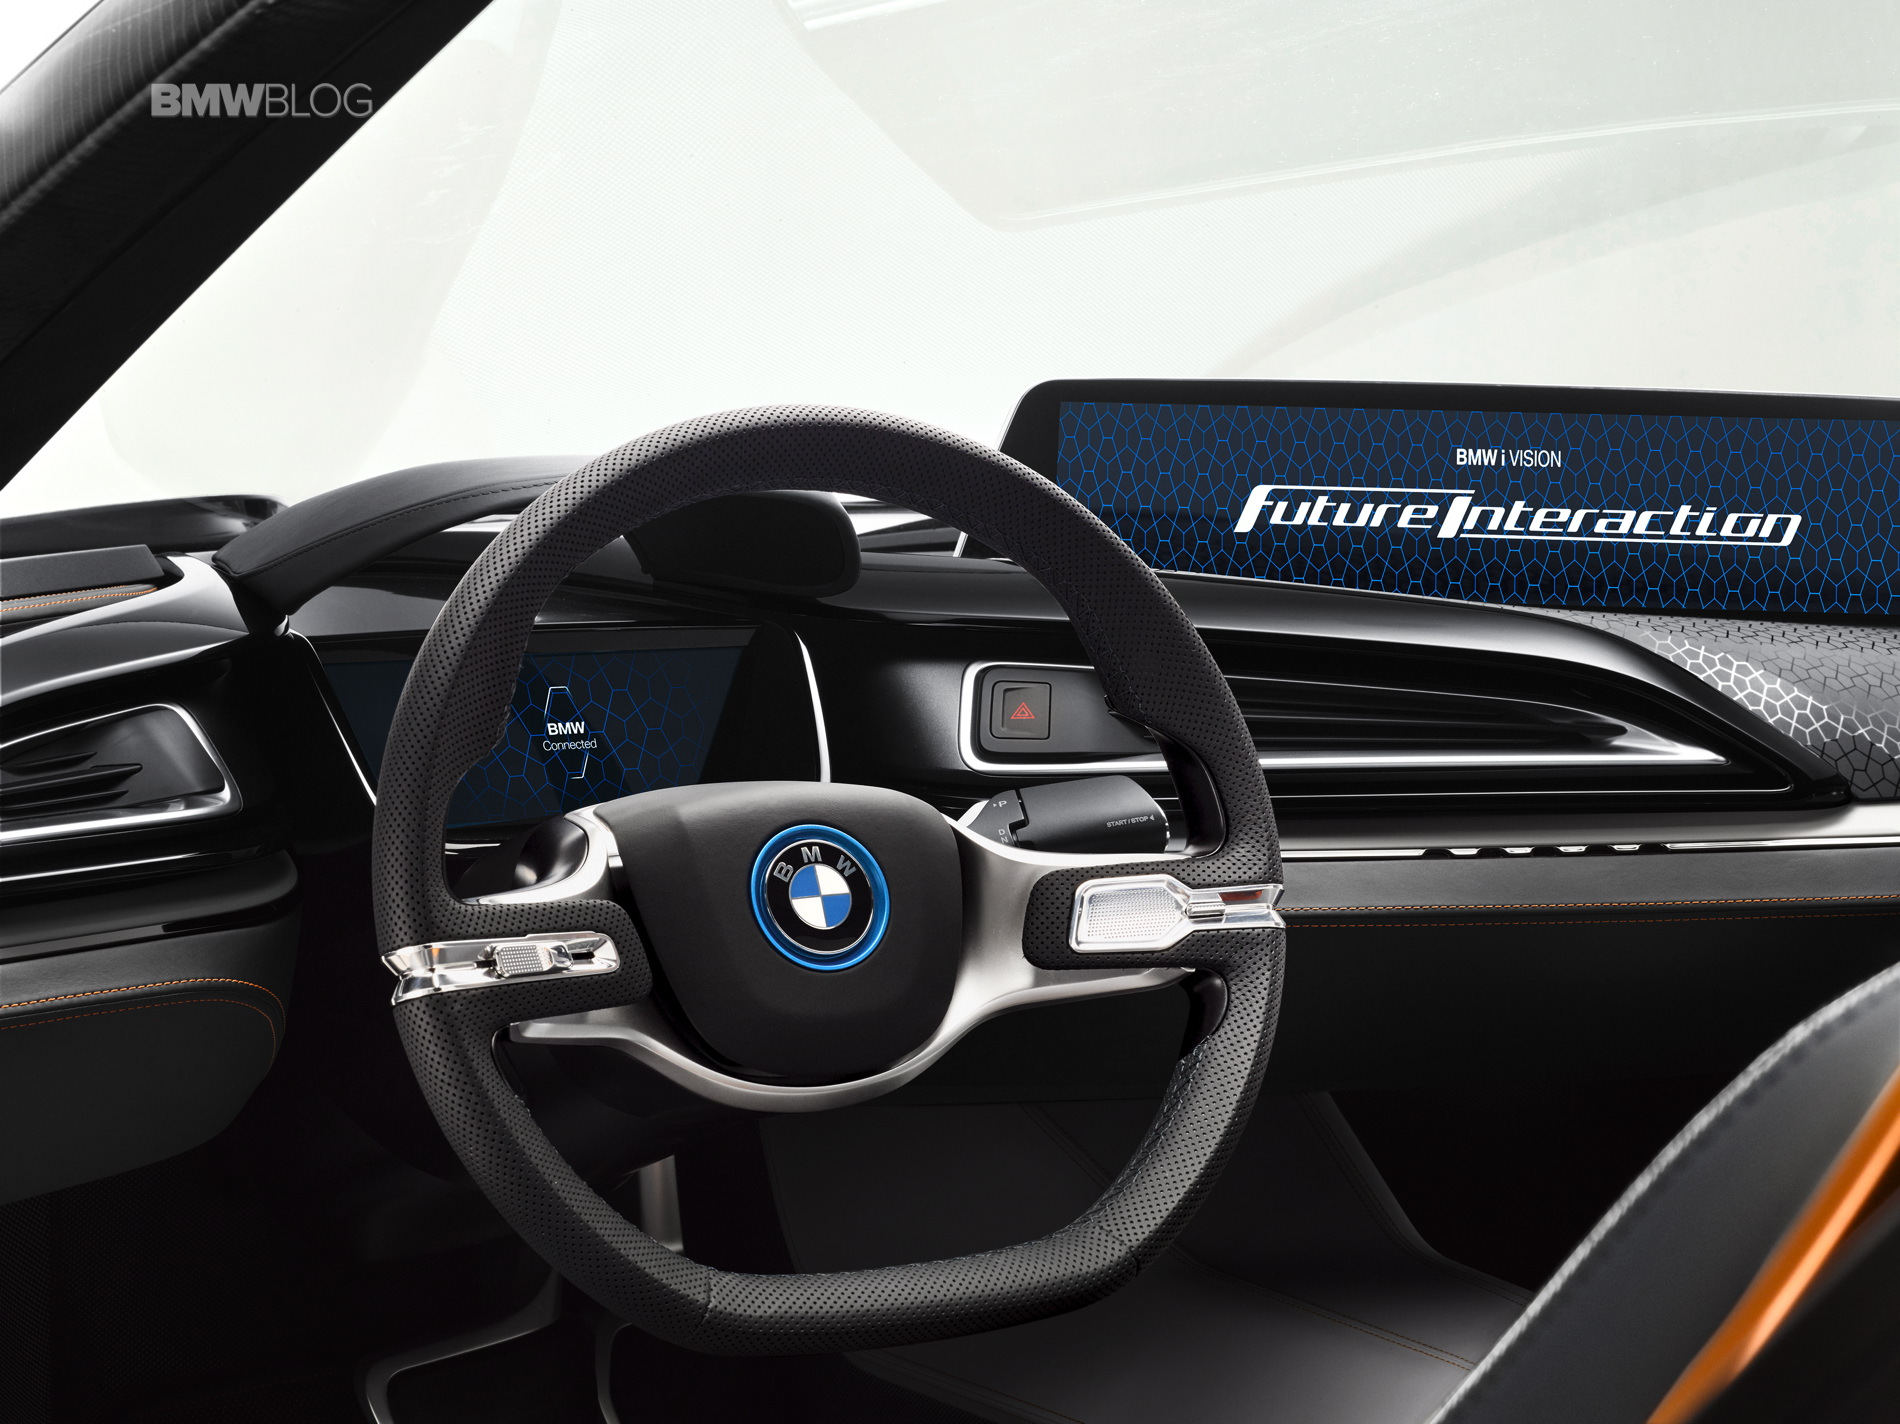 world premiere bmw i vision future interaction. Black Bedroom Furniture Sets. Home Design Ideas